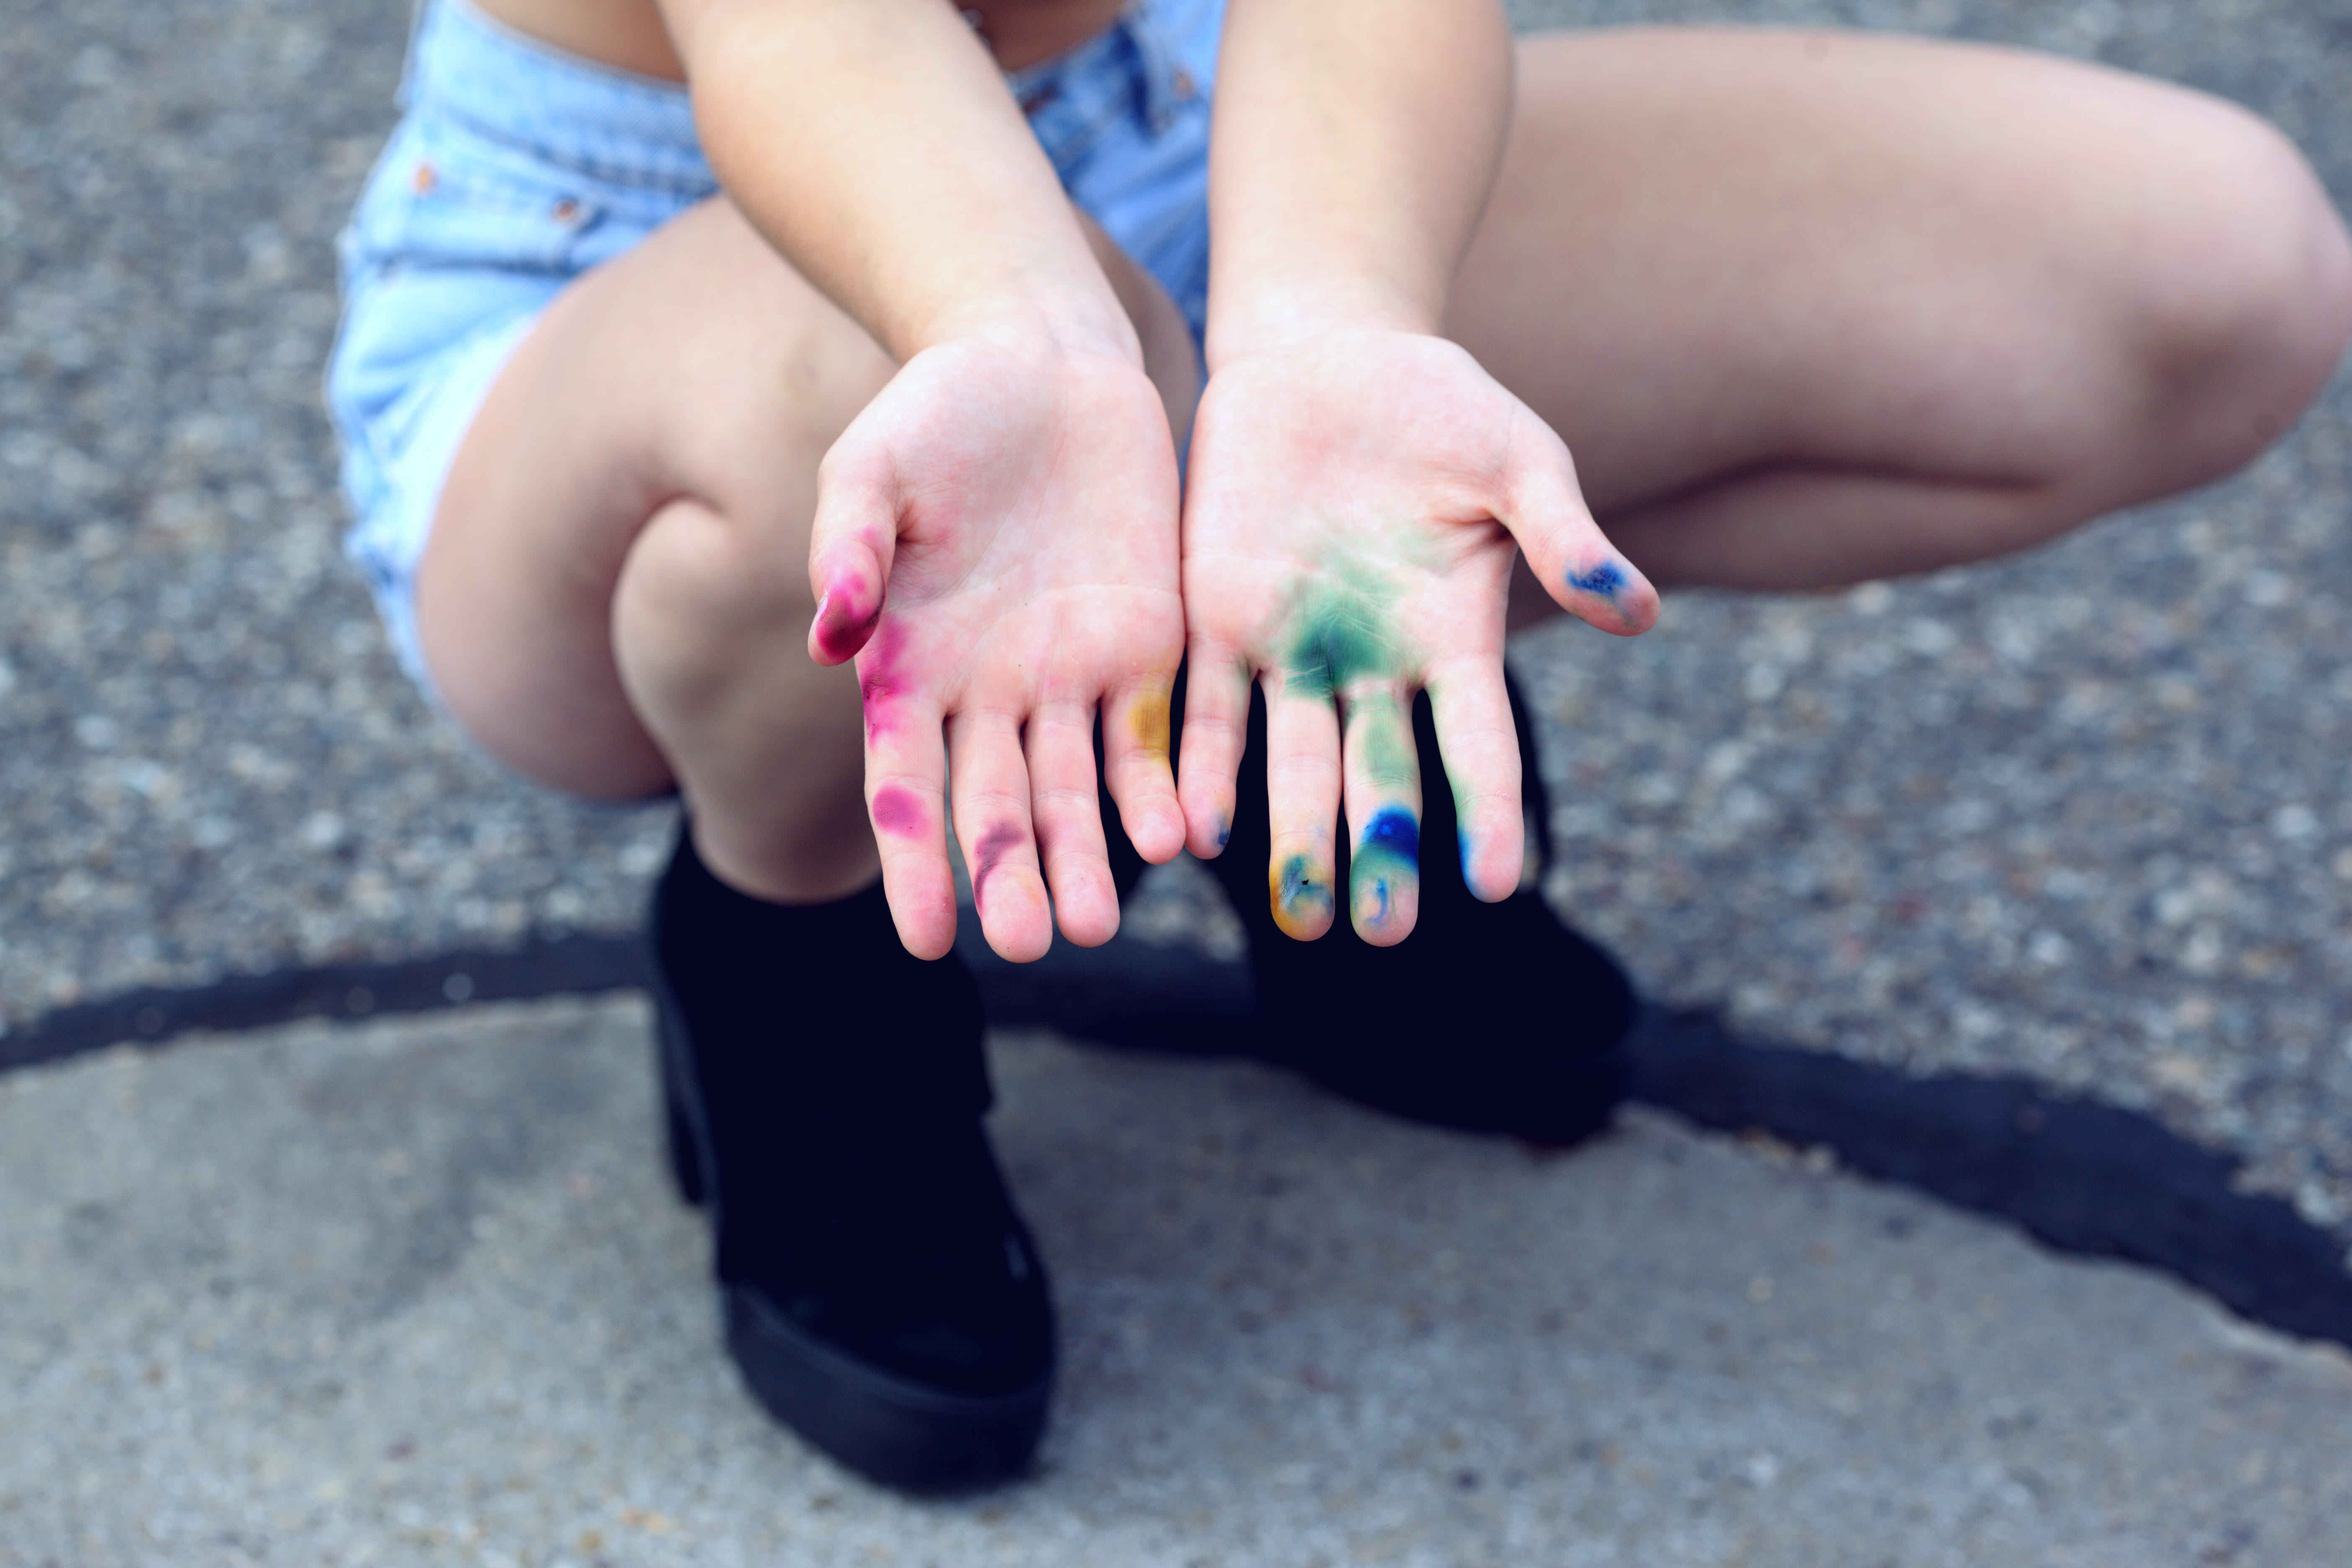 Woman Squatting Holding Out Her Hands With Assorted Paints